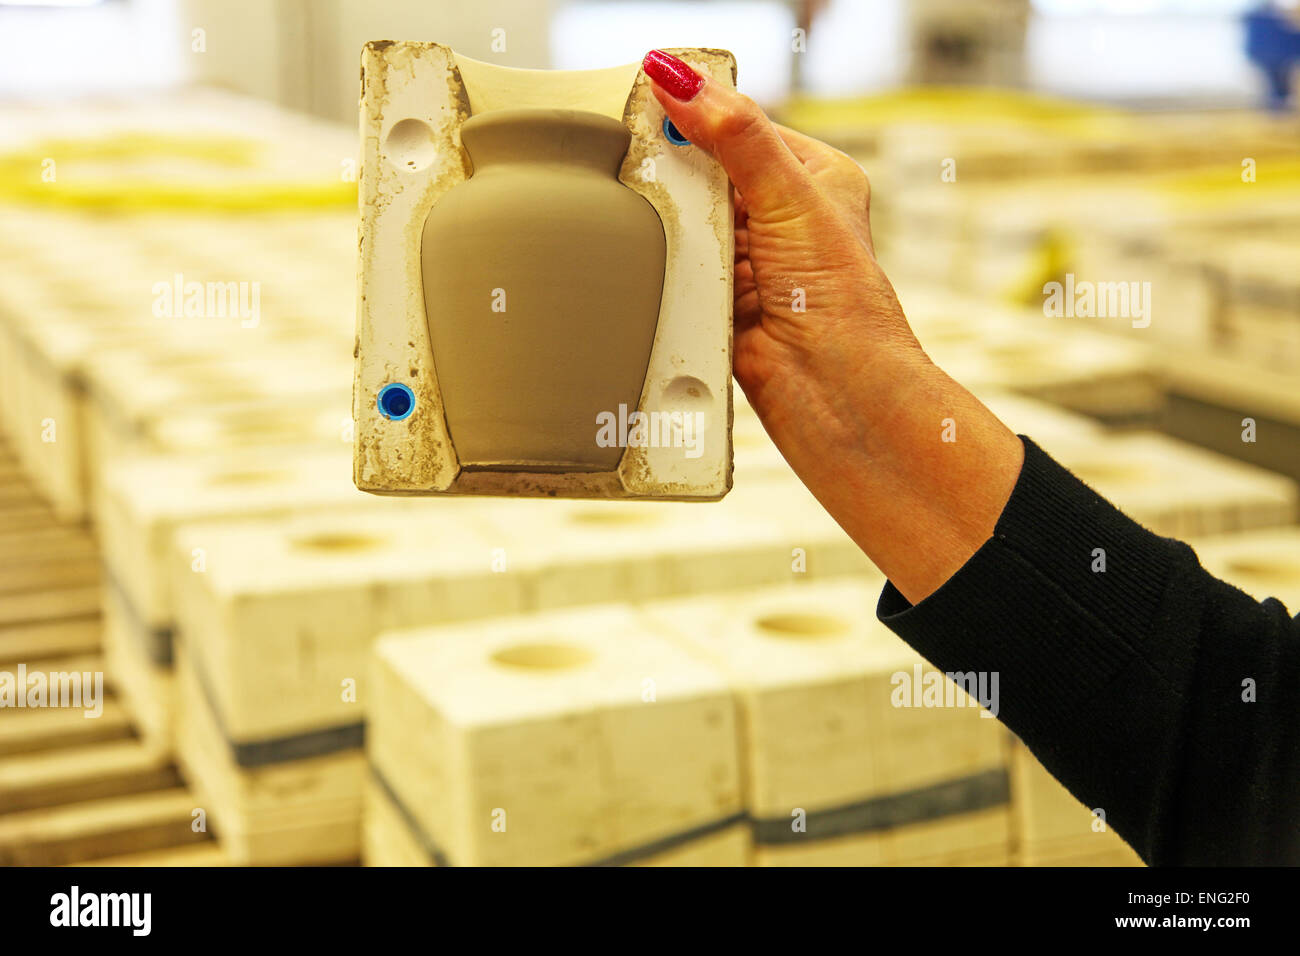 A clay vase in a mould or mold at the Emma Bridgewater pottery factory, Hanley, Stoke on Trent, Staffordshire, England, - Stock Image